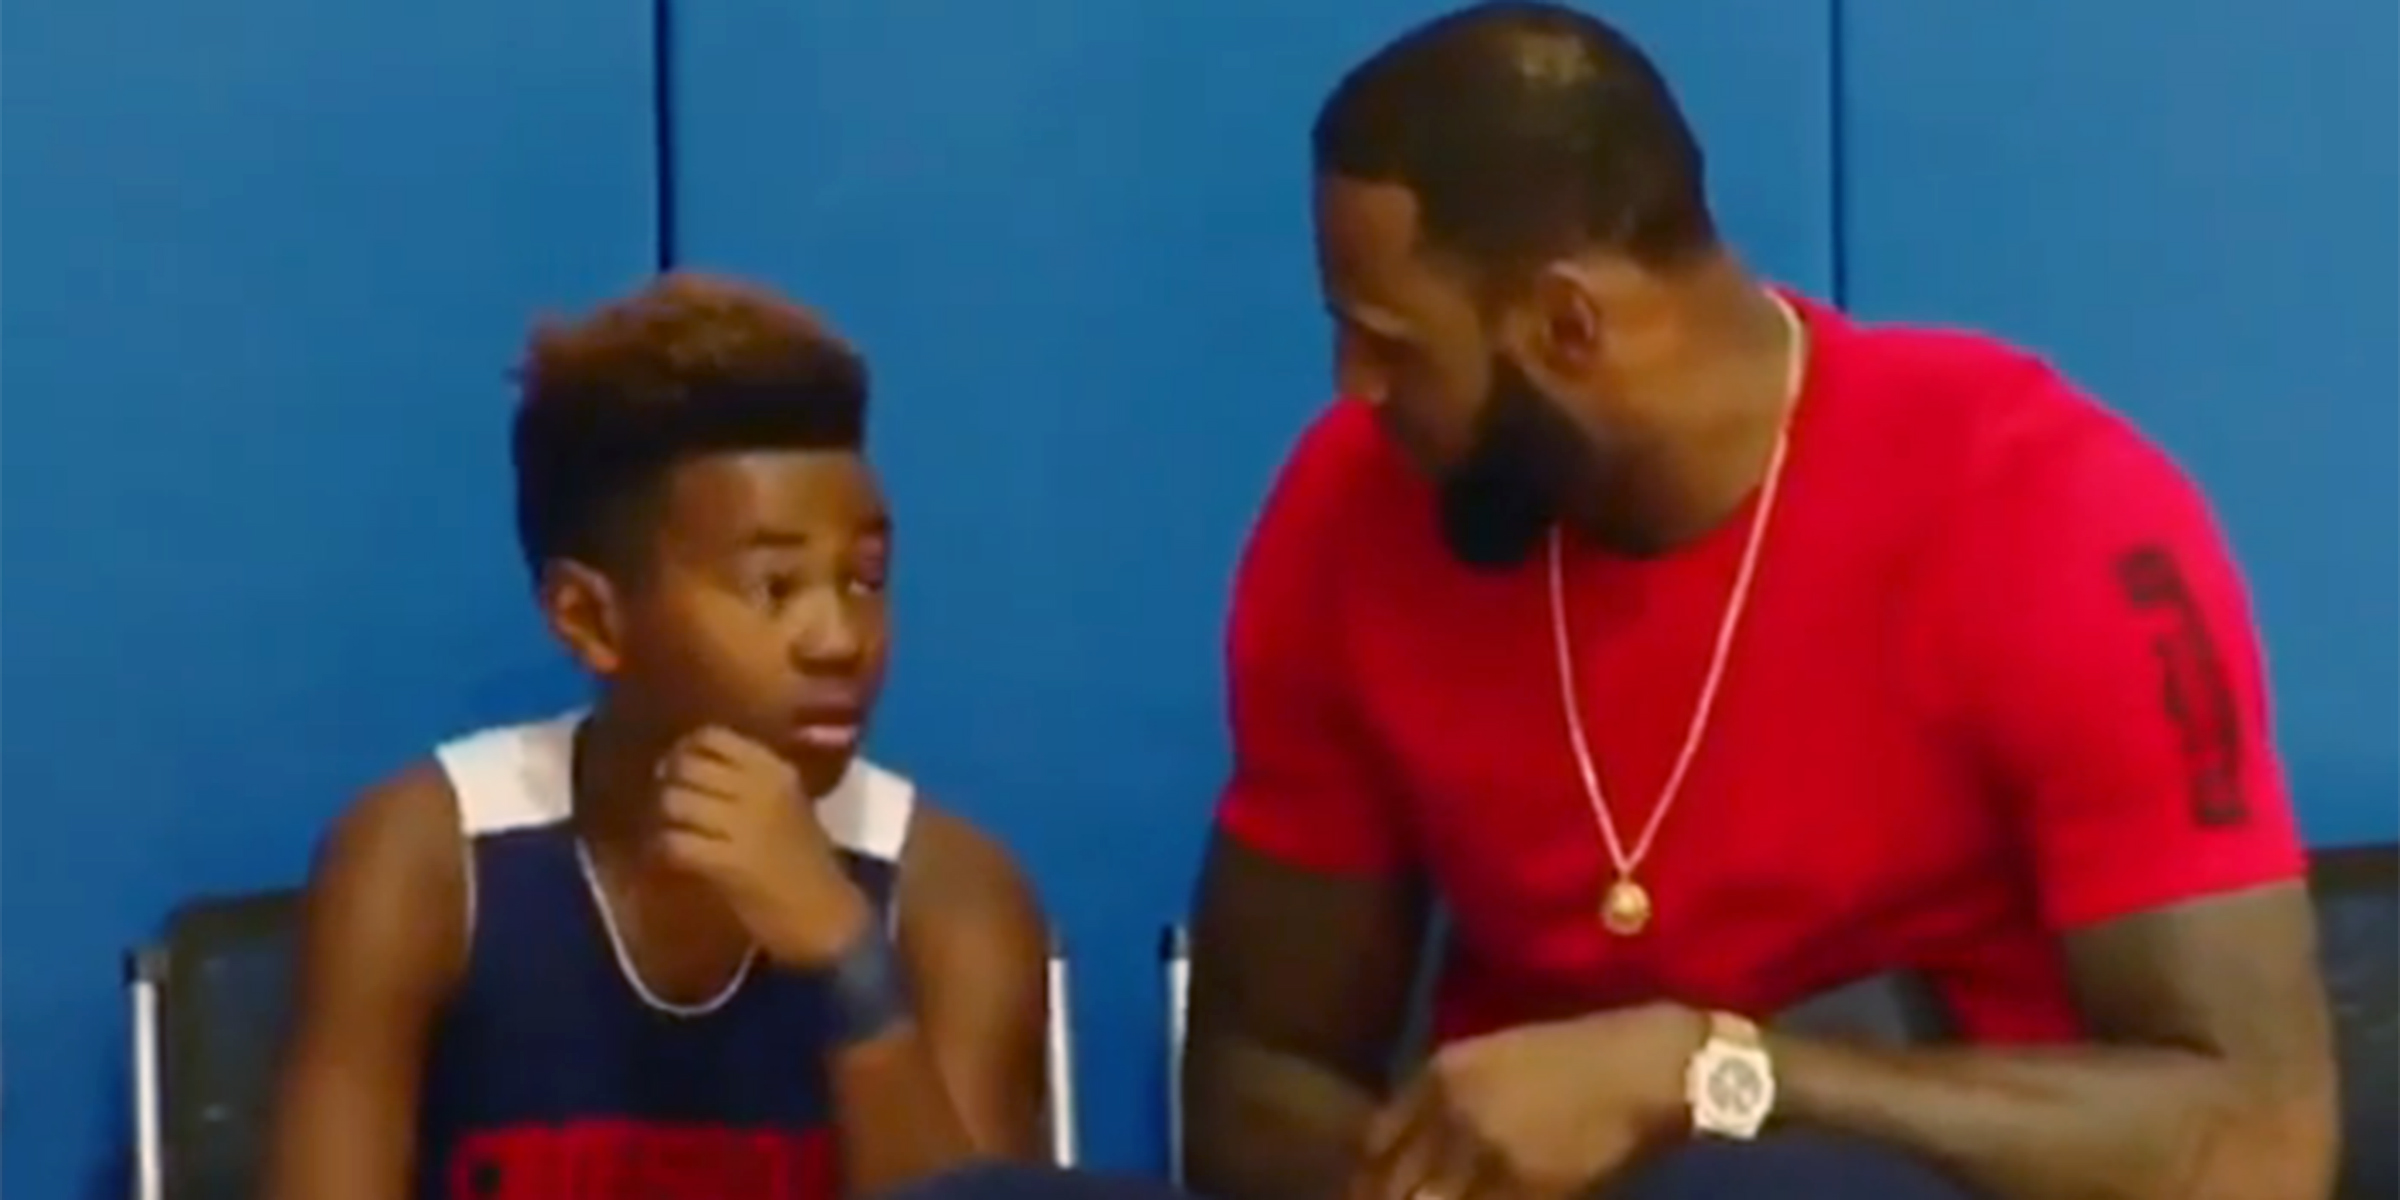 defa6f97137b LeBron James gave his son a pep talk after a youth basketball game